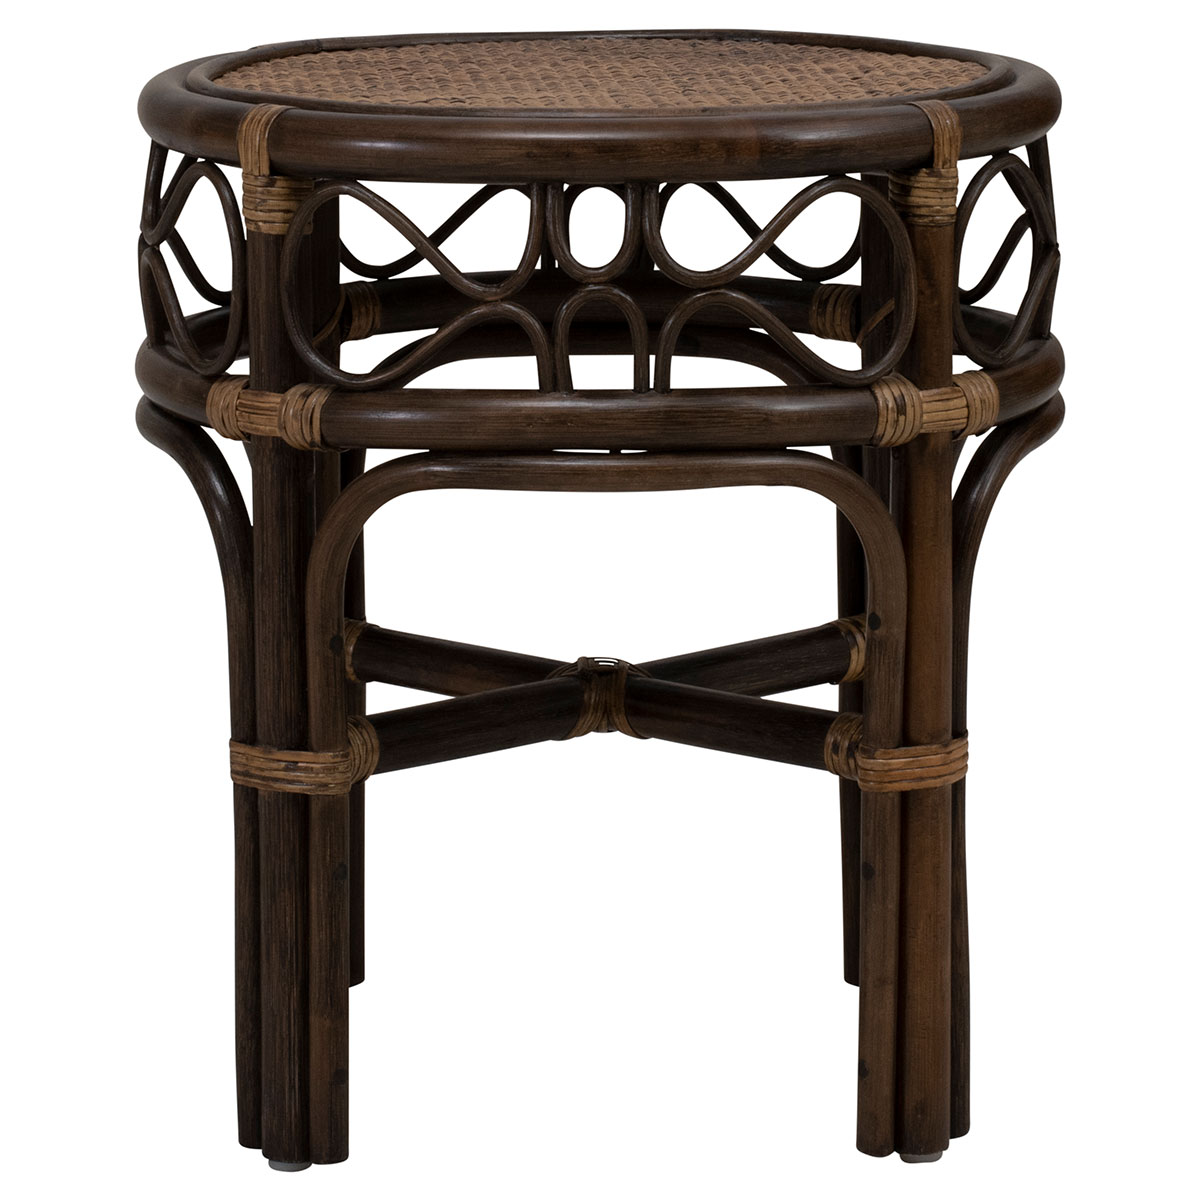 MAHALA SIDE TABLE in light antique brown rattan